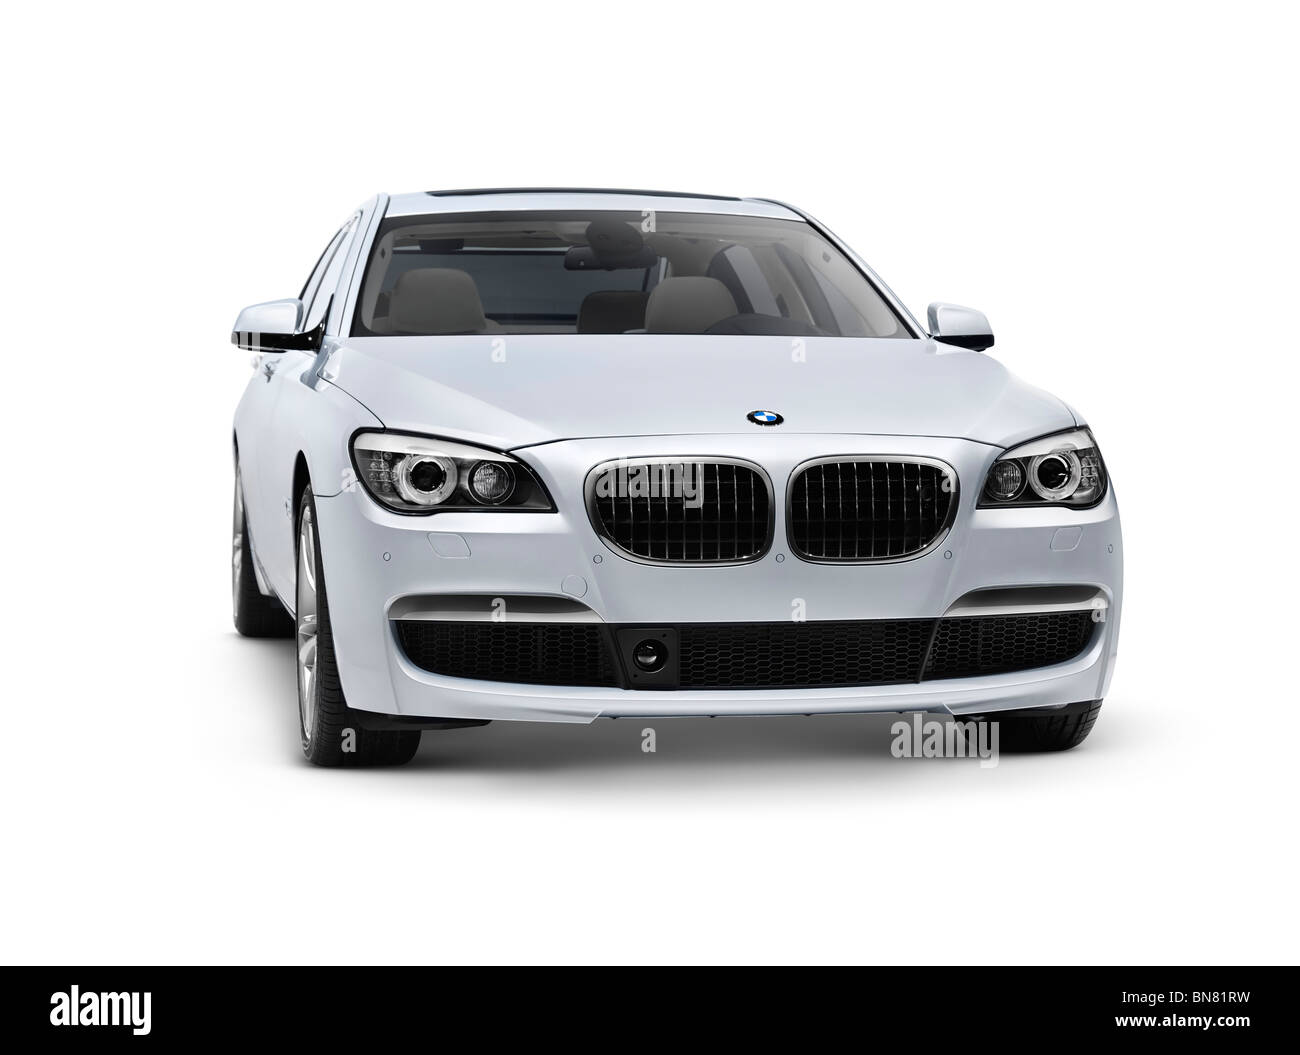 2010 BMW 760Li Individual 7 Series luxury sedan car isolated with clipping path on white background - Stock Image